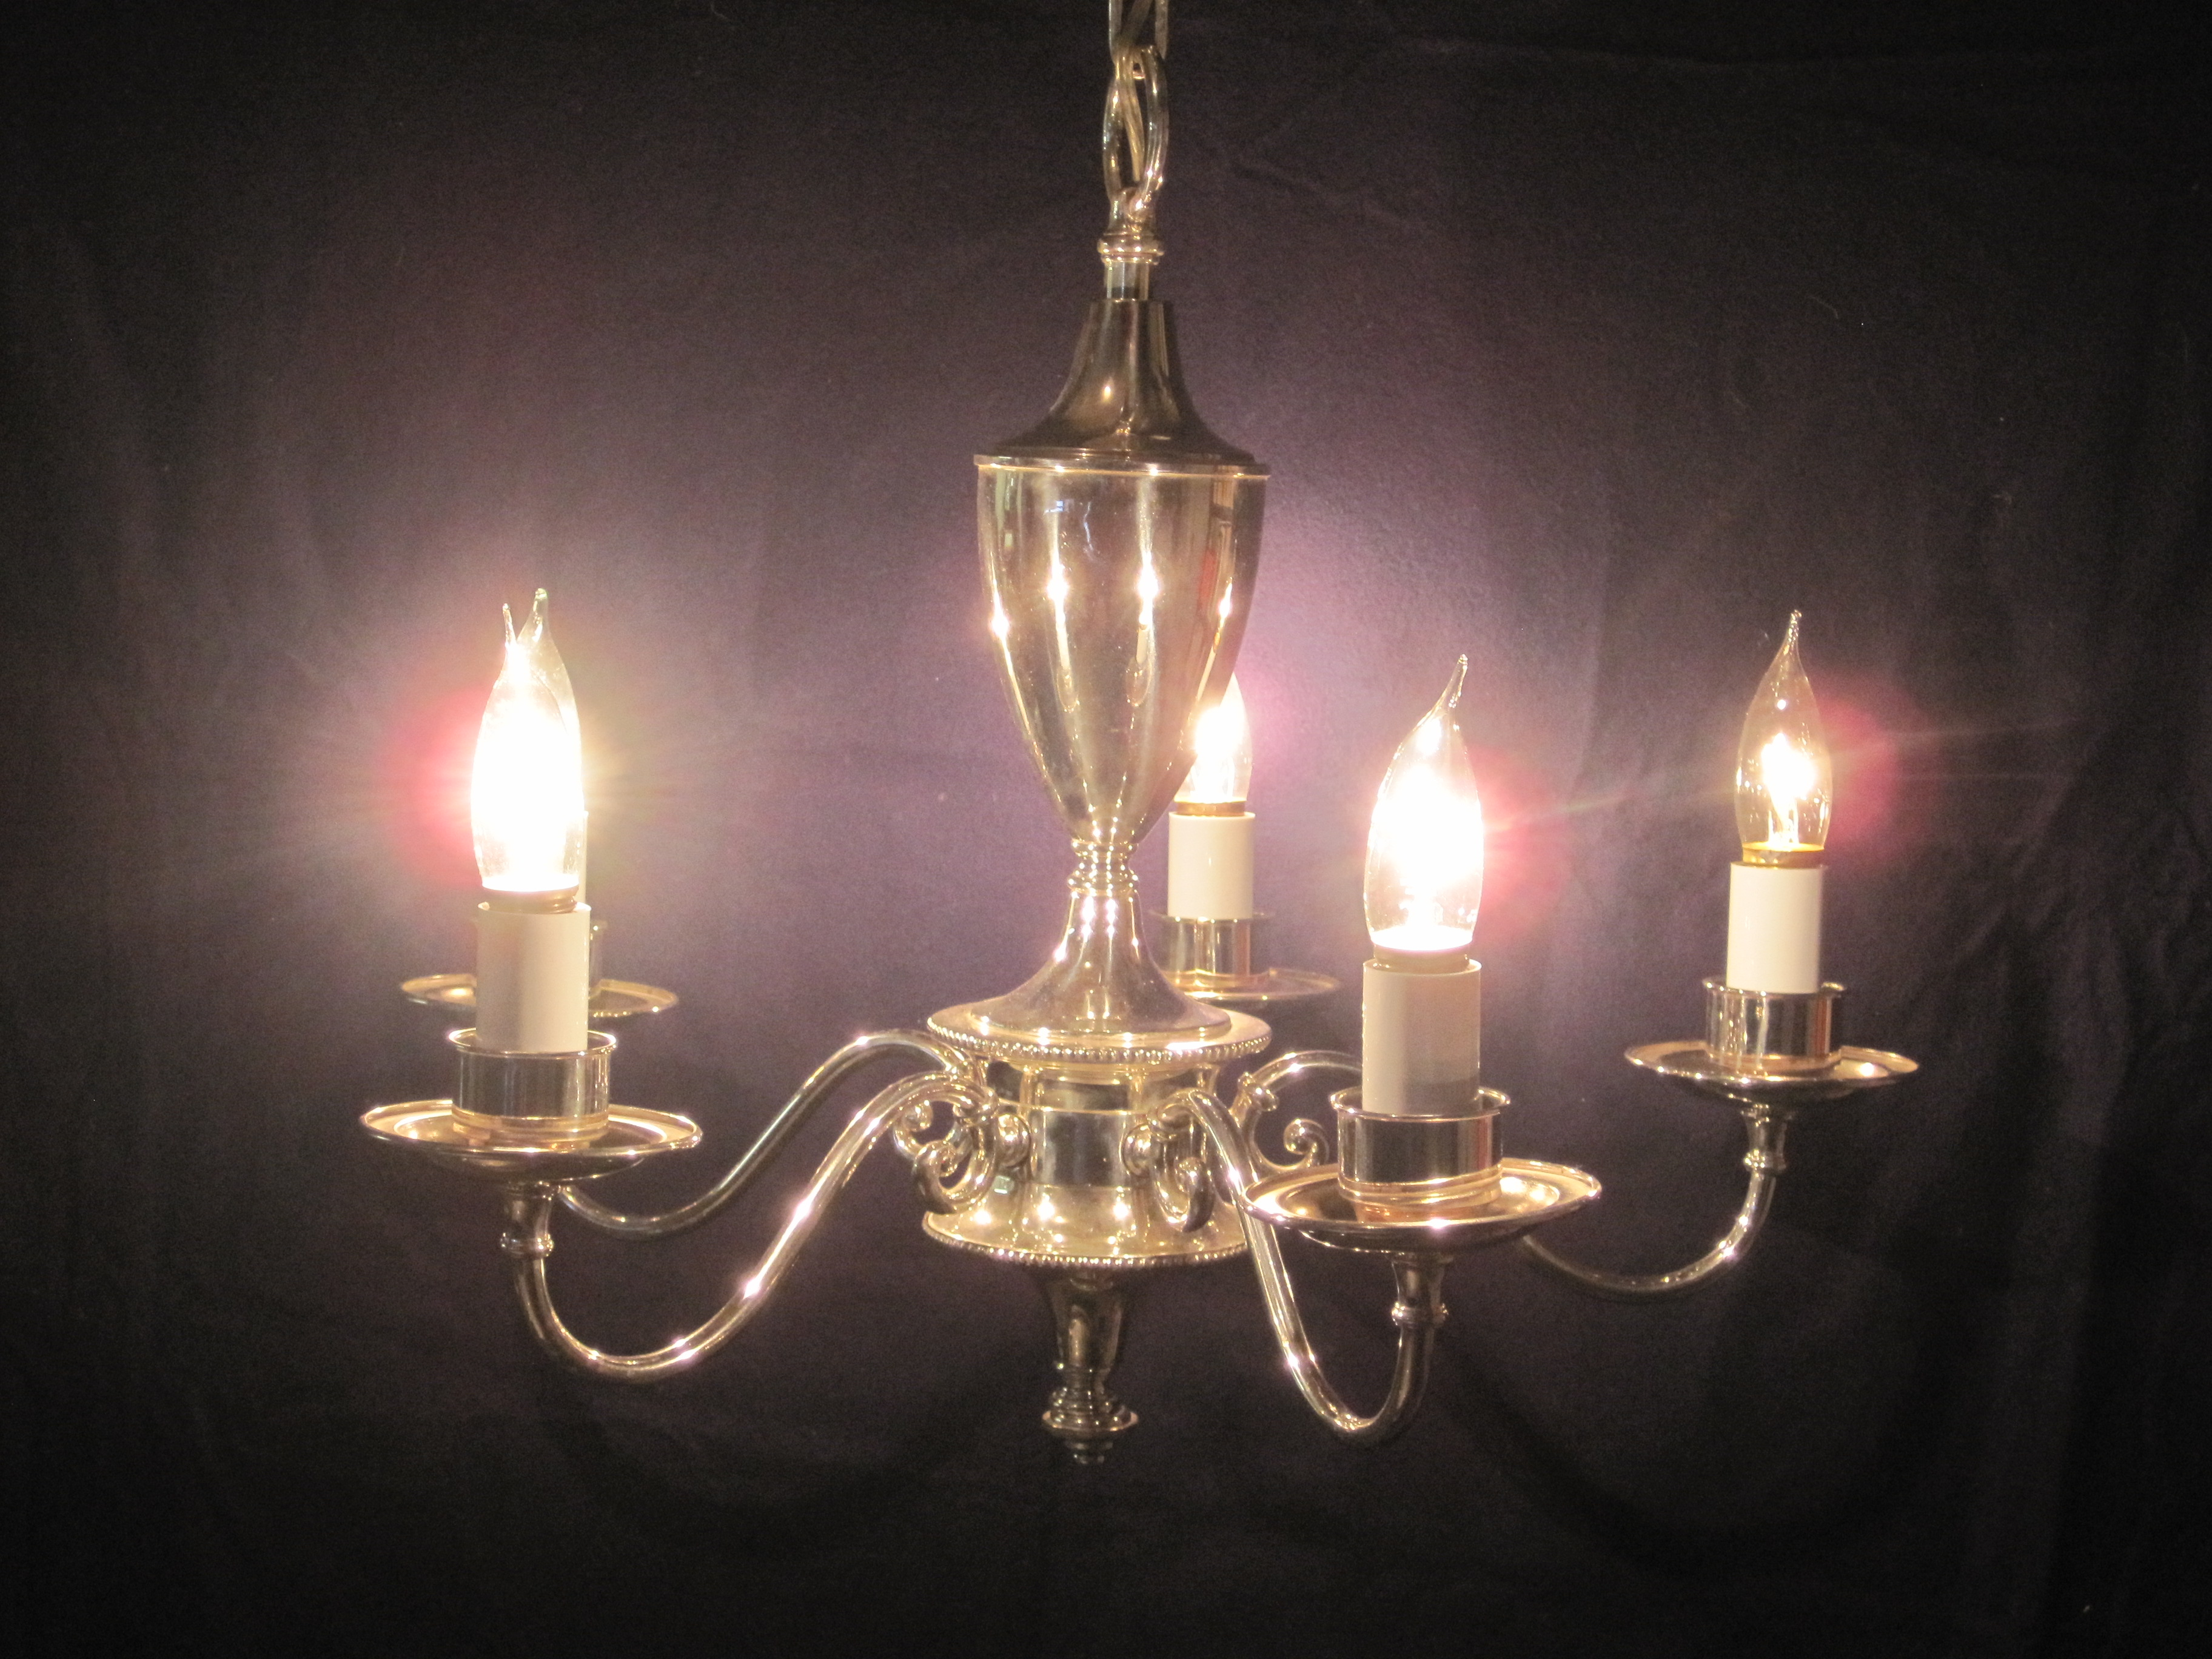 Classic Silver Plated Five Light Chandelier, Early 1900's